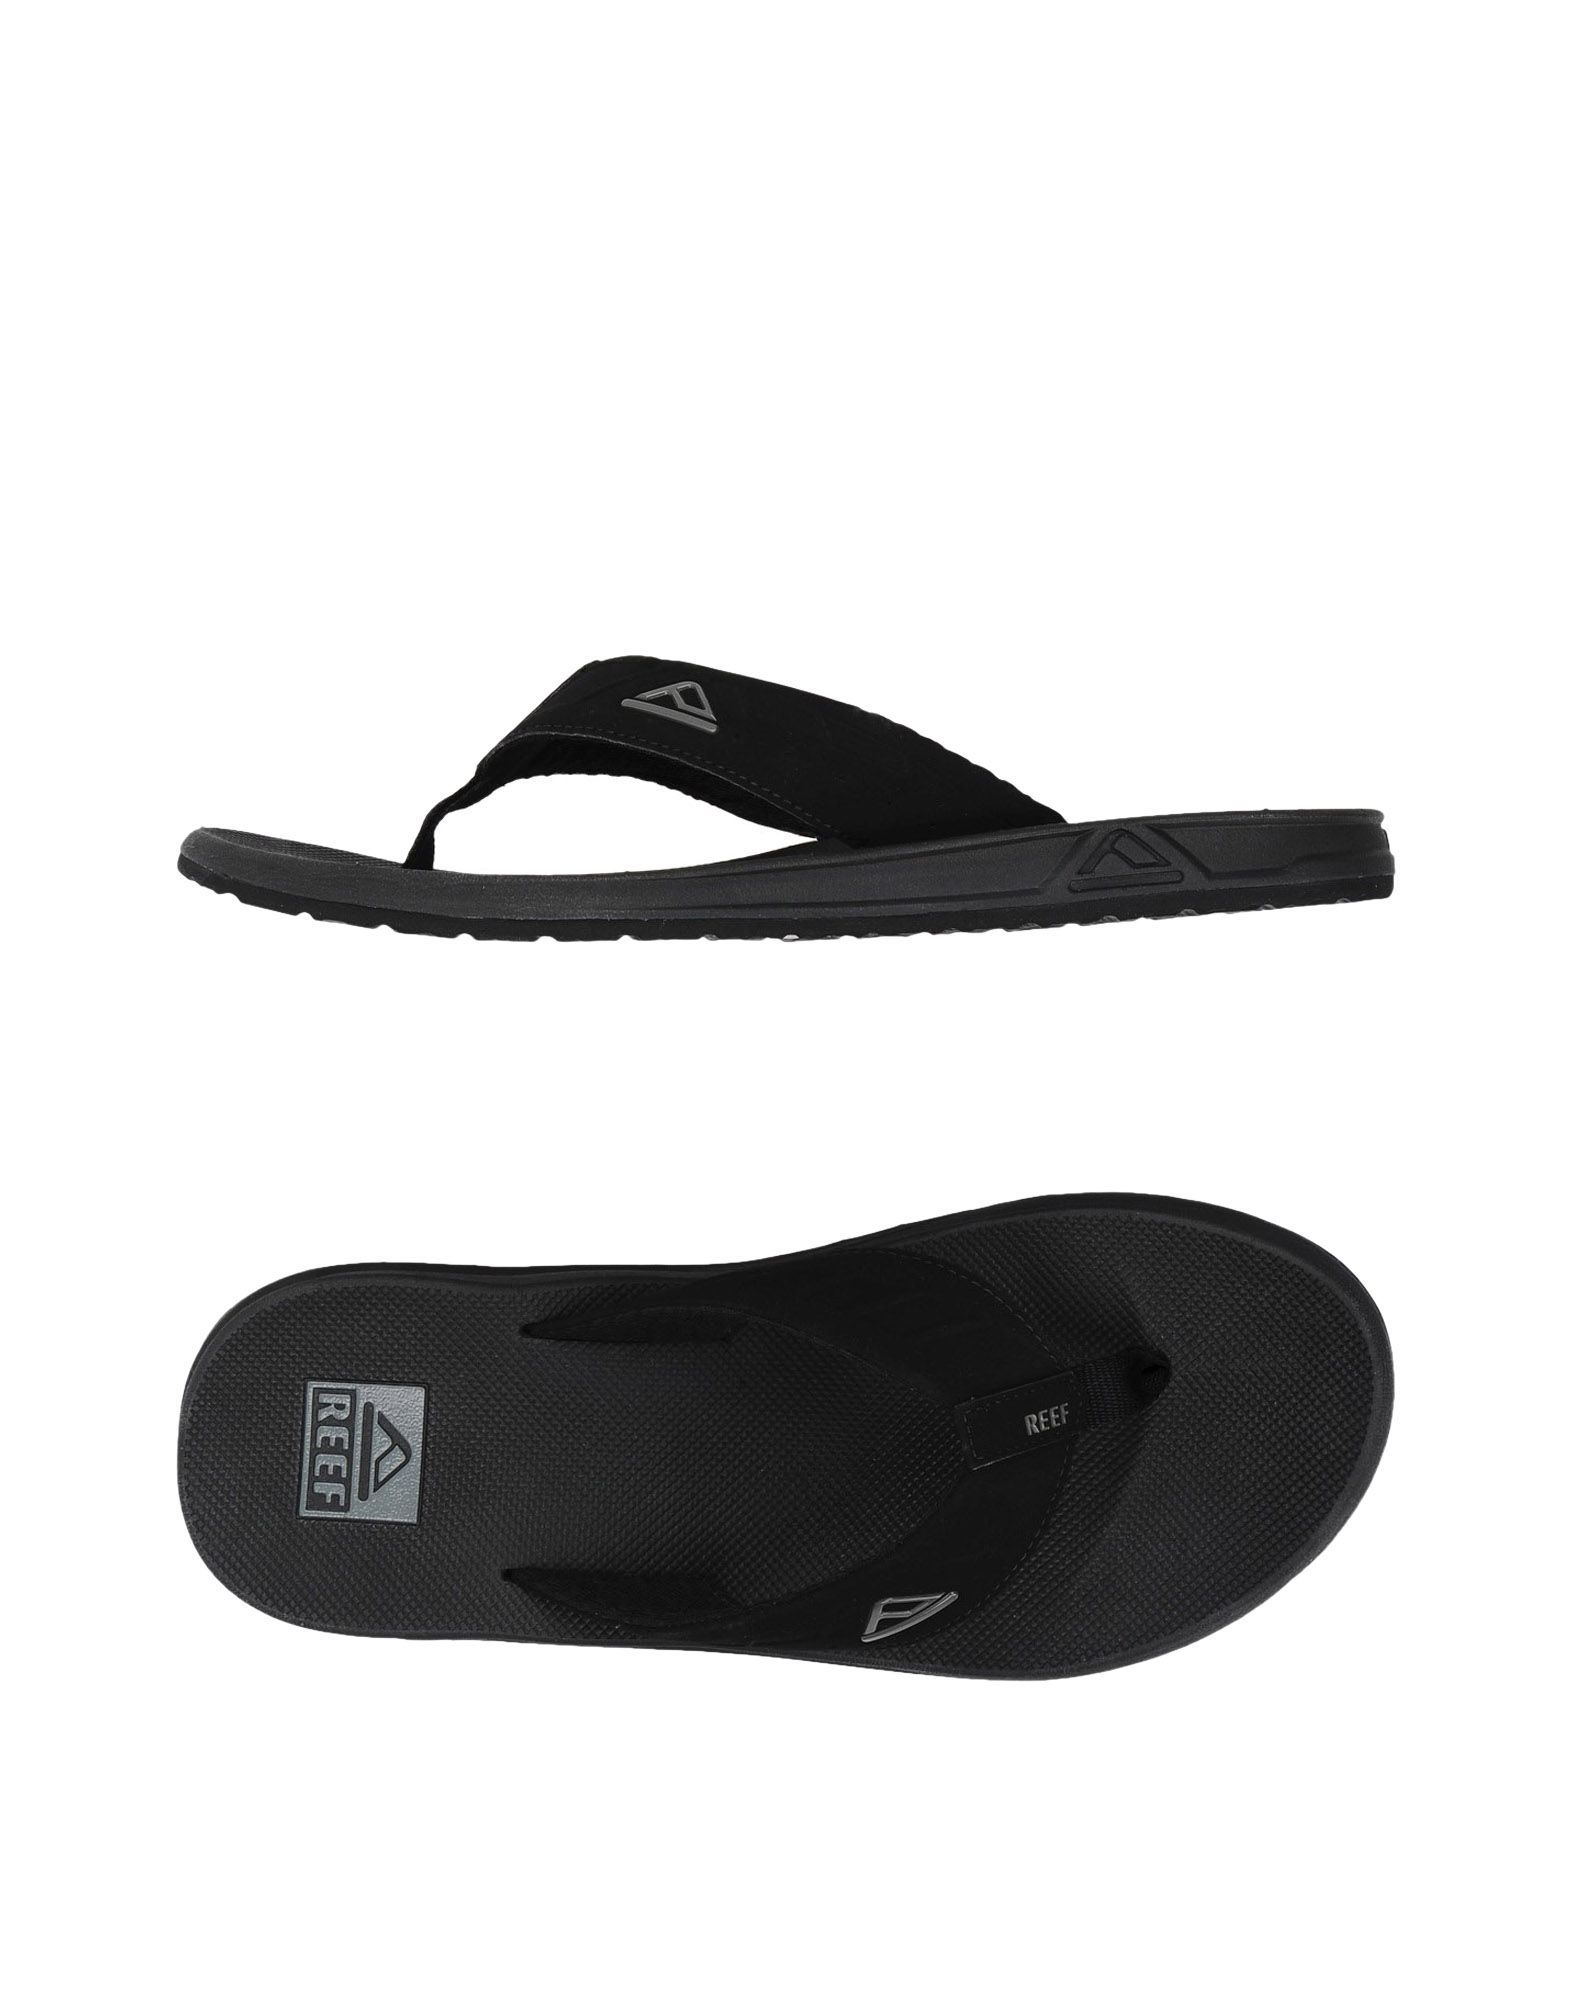 8fb3748ccc87 REEF TOE STRAP SANDALS.  reef  shoes